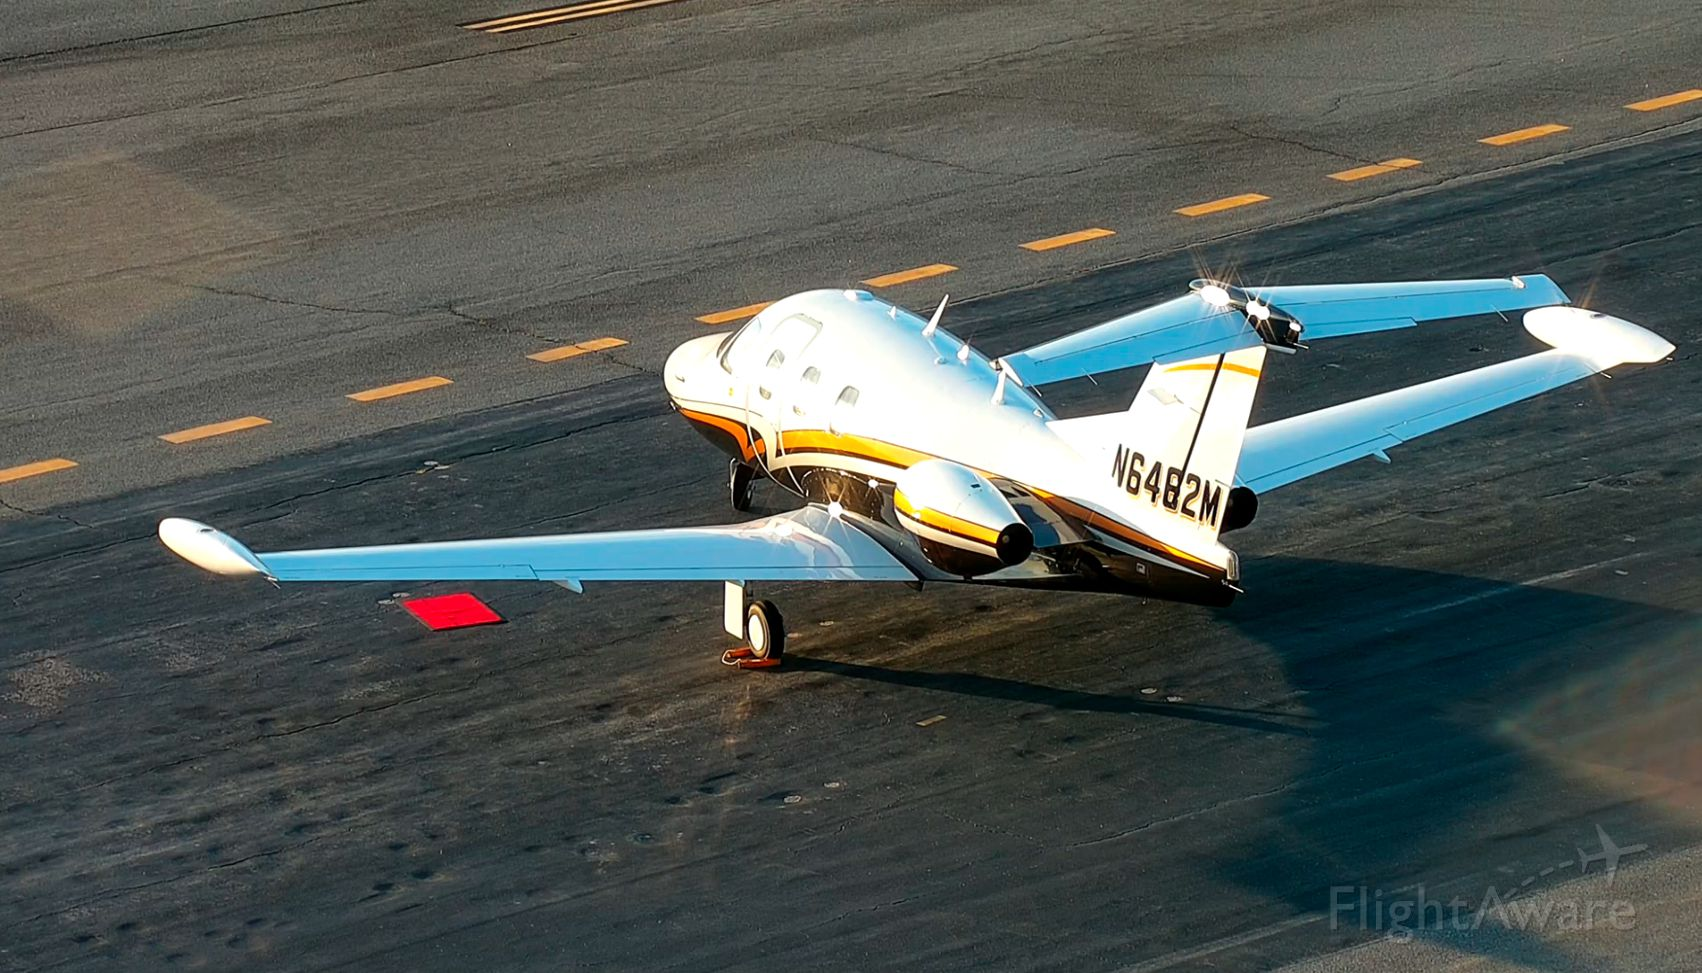 Eclipse 500 (N6462M) - Finally have an Eclipse 500 based out of KVLD. Beautiful jet!